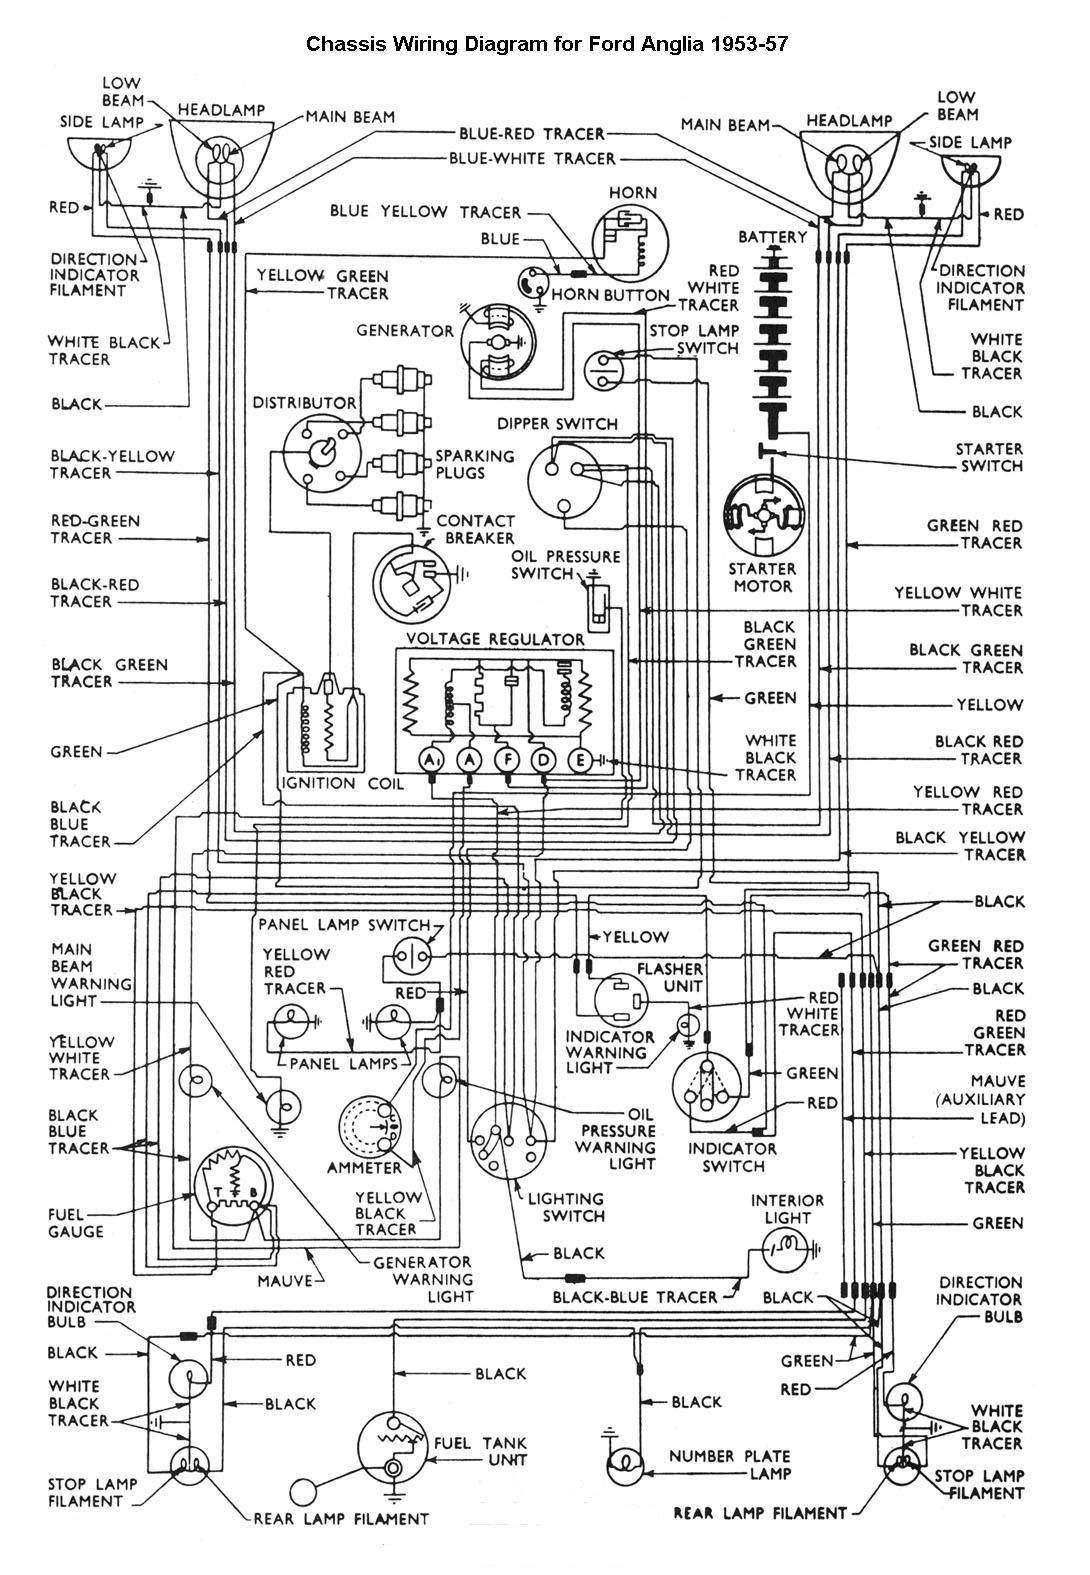 Car Wiring Diagram Electrical Wiring Diagram Electrical Diagram Electrical Wiring